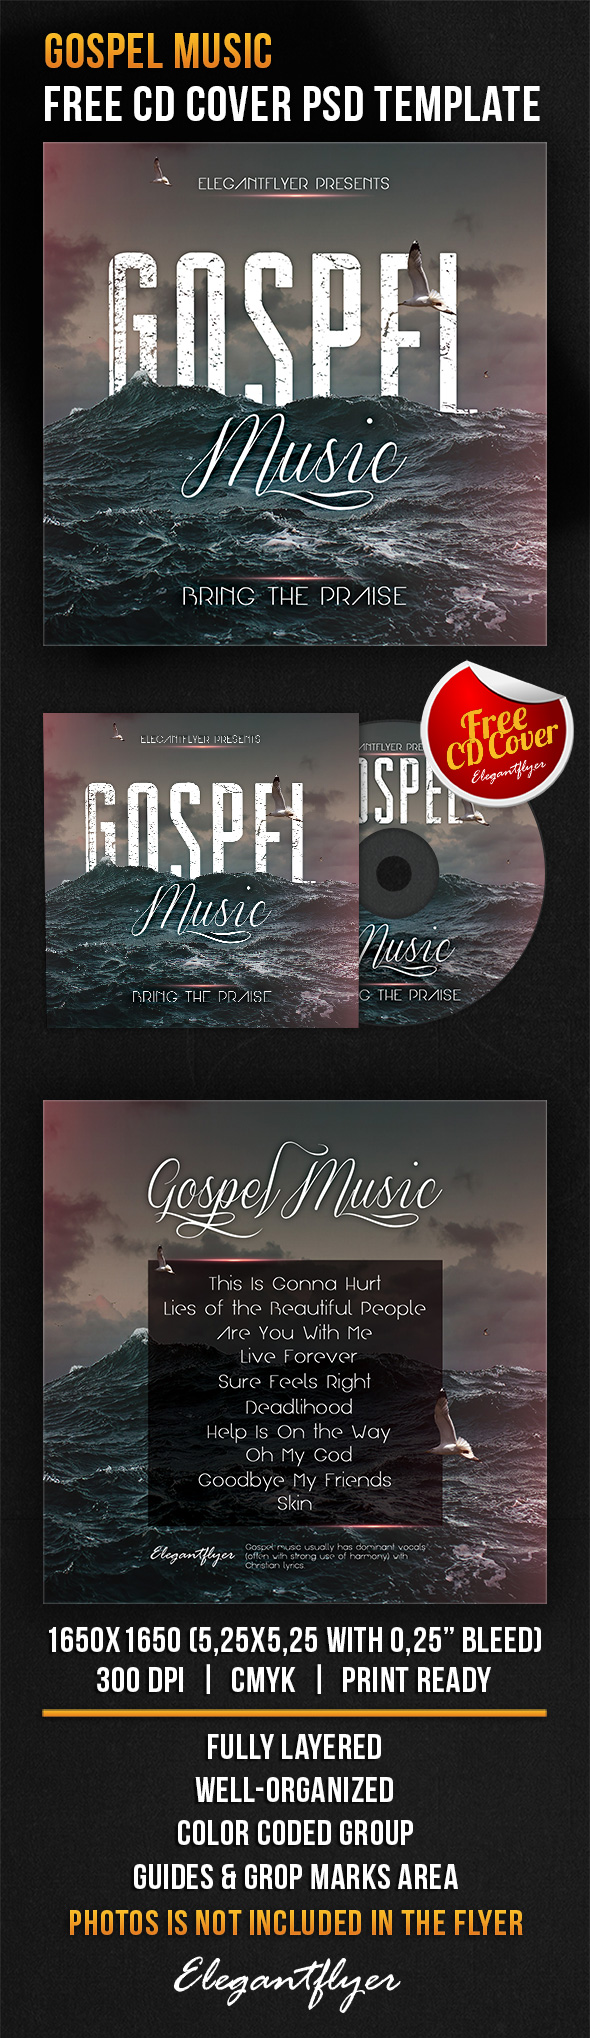 Gospel Music – Free CD Cover PSD Template | Free cd covers, Cd cover ...